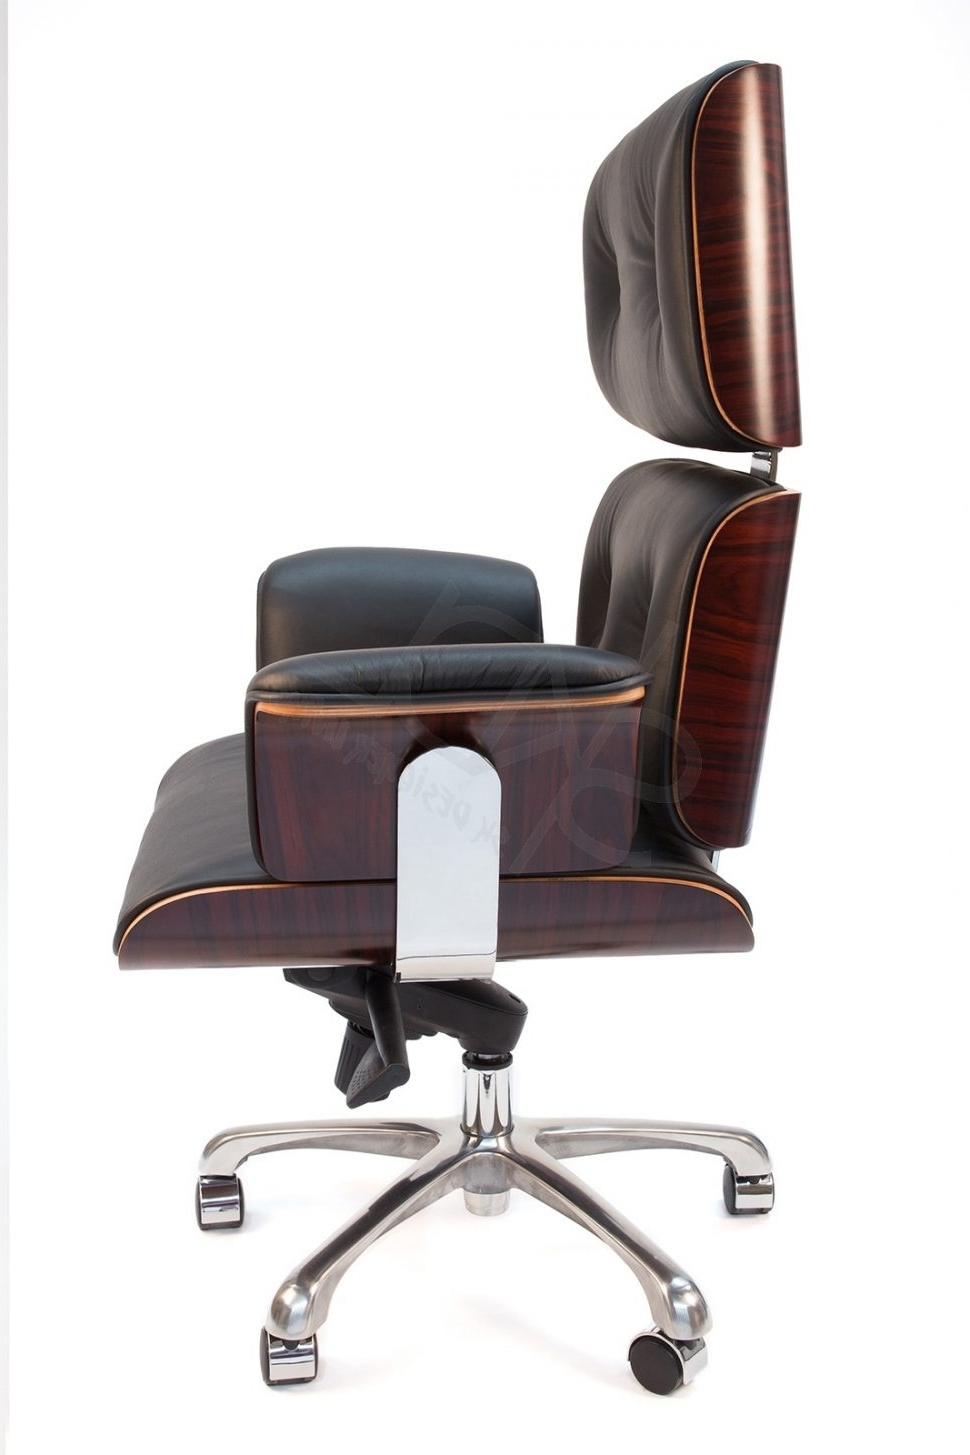 Executive Office Chairs Without Wheels Intended For Current Furniture : Leather Office Furniture Best Home Office Chair Wooden (View 7 of 20)